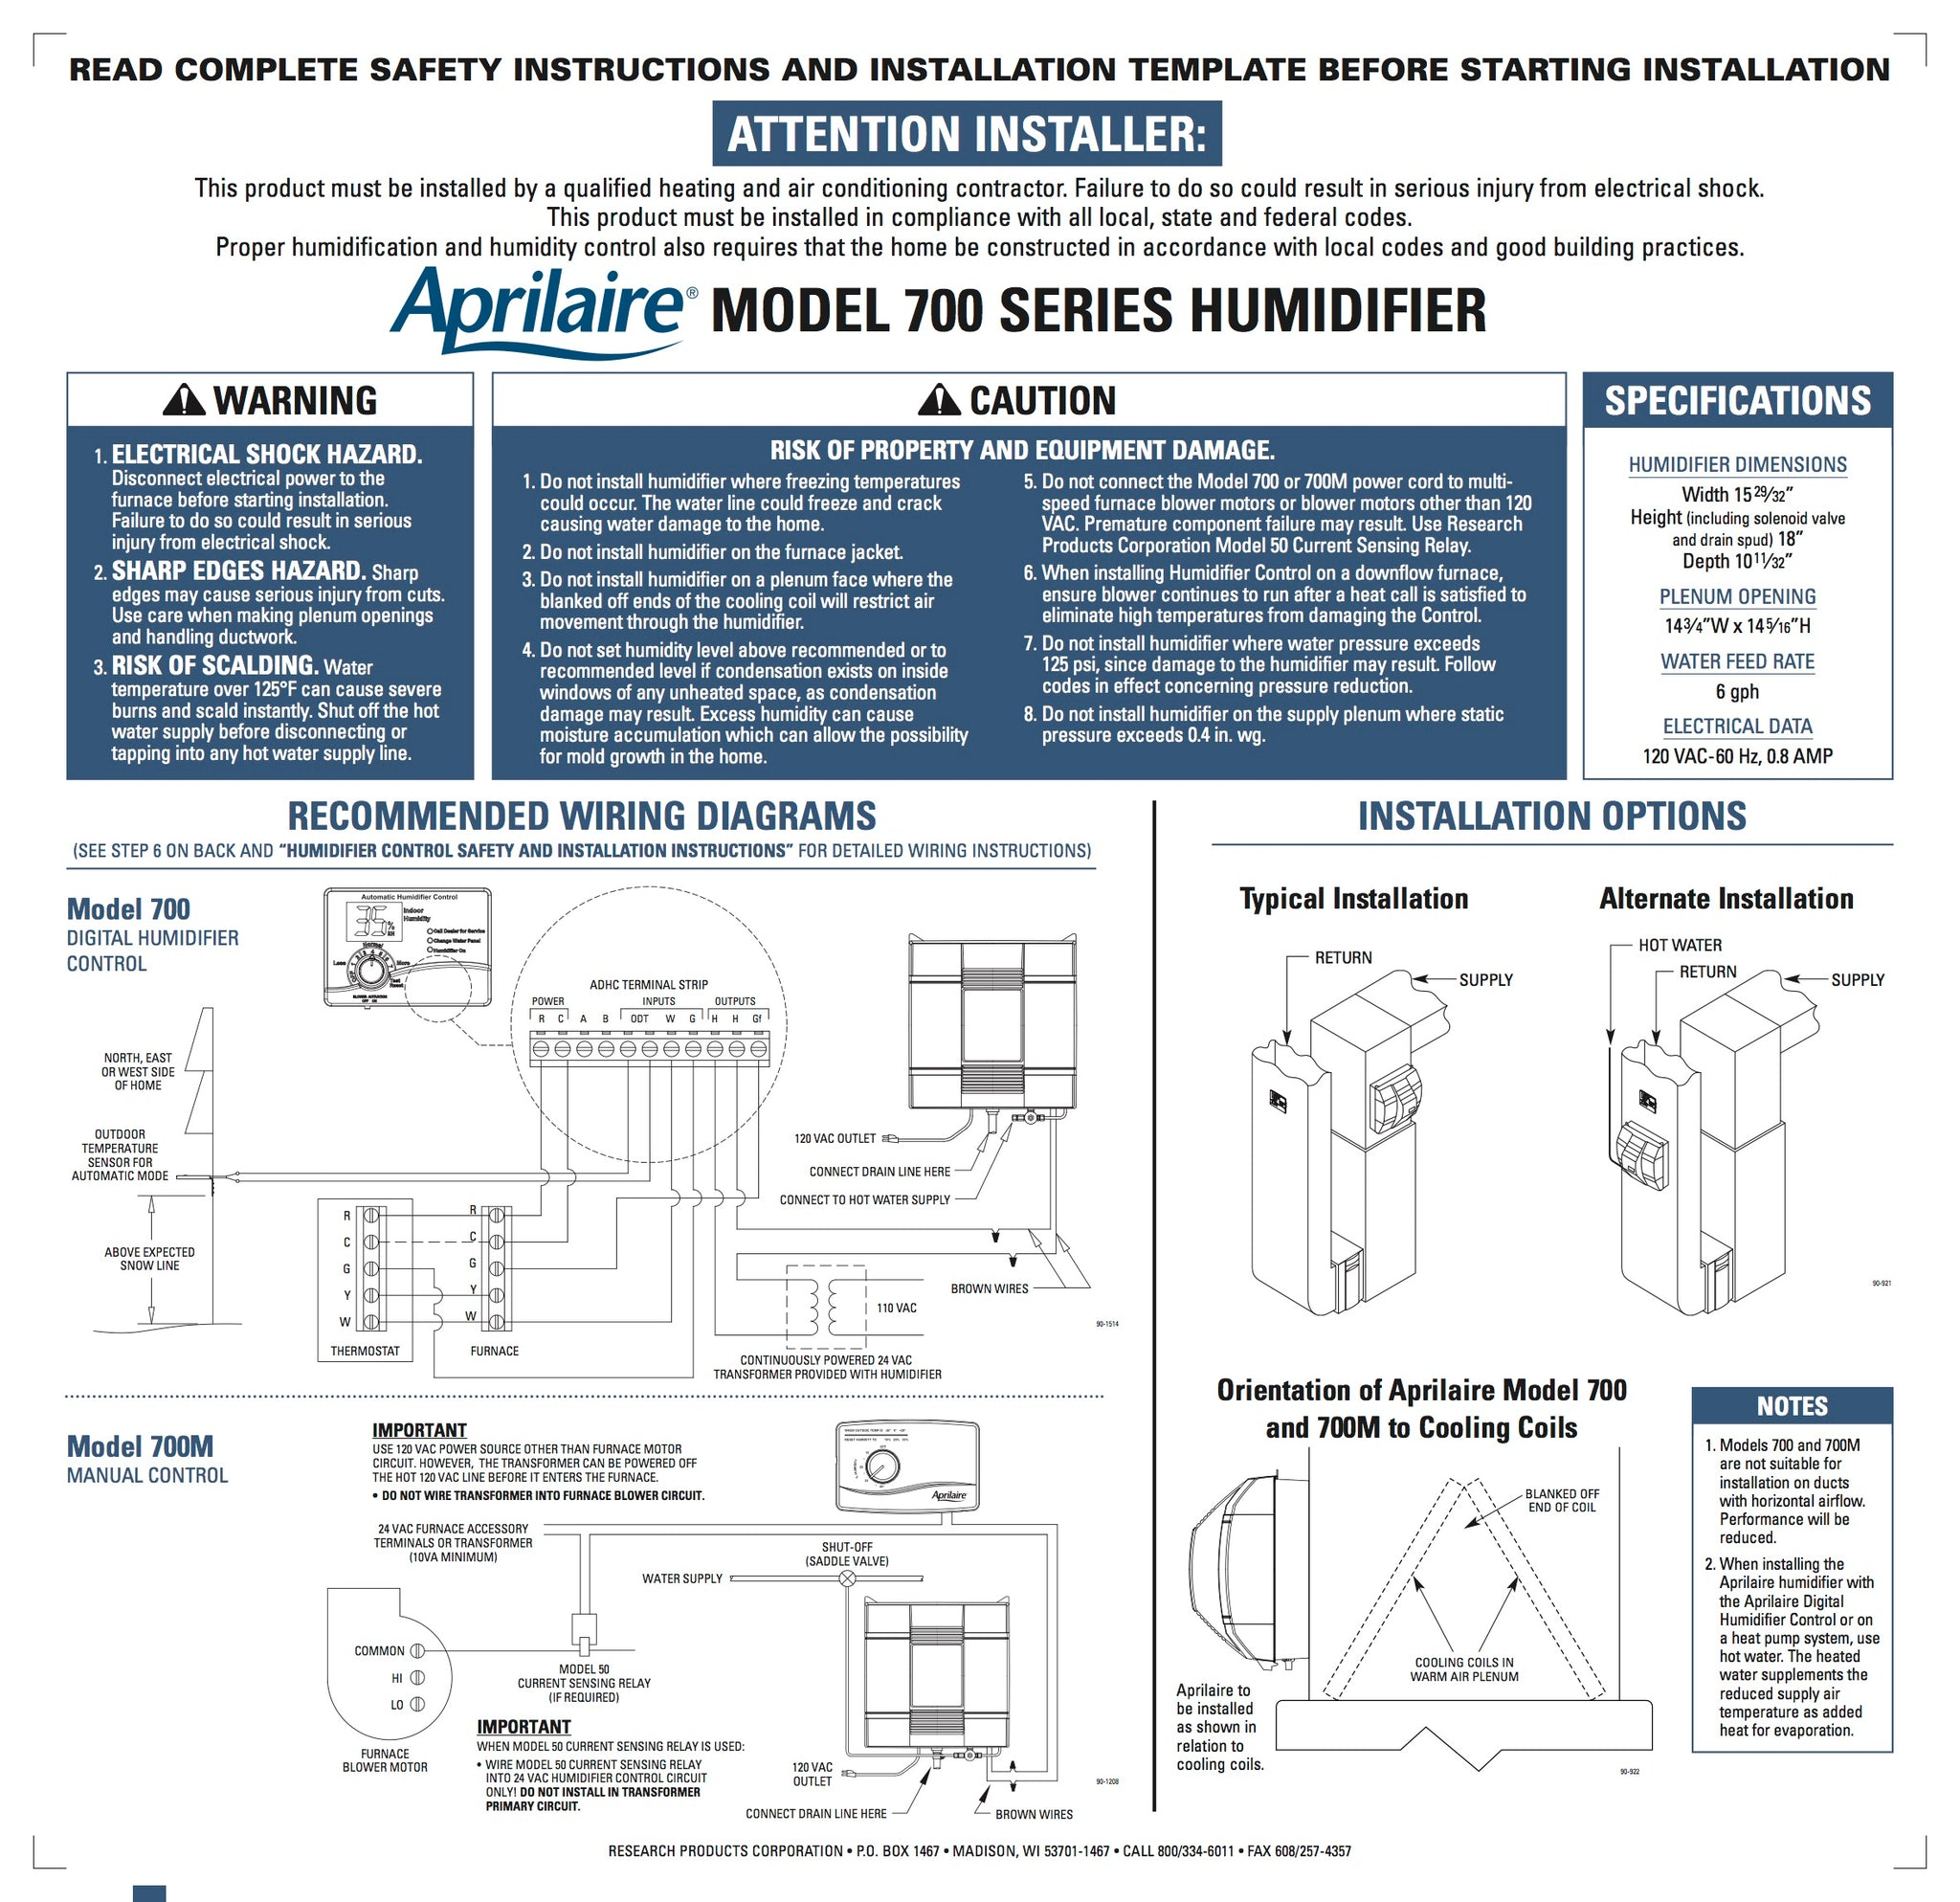 Aprilaire_700_Humidifier_Instructions_Page_1_2048x2048?v=1474913304 aprilaire 700 series installation guide rocketiaq com aprilaire 700 humidifier wiring diagram at crackthecode.co